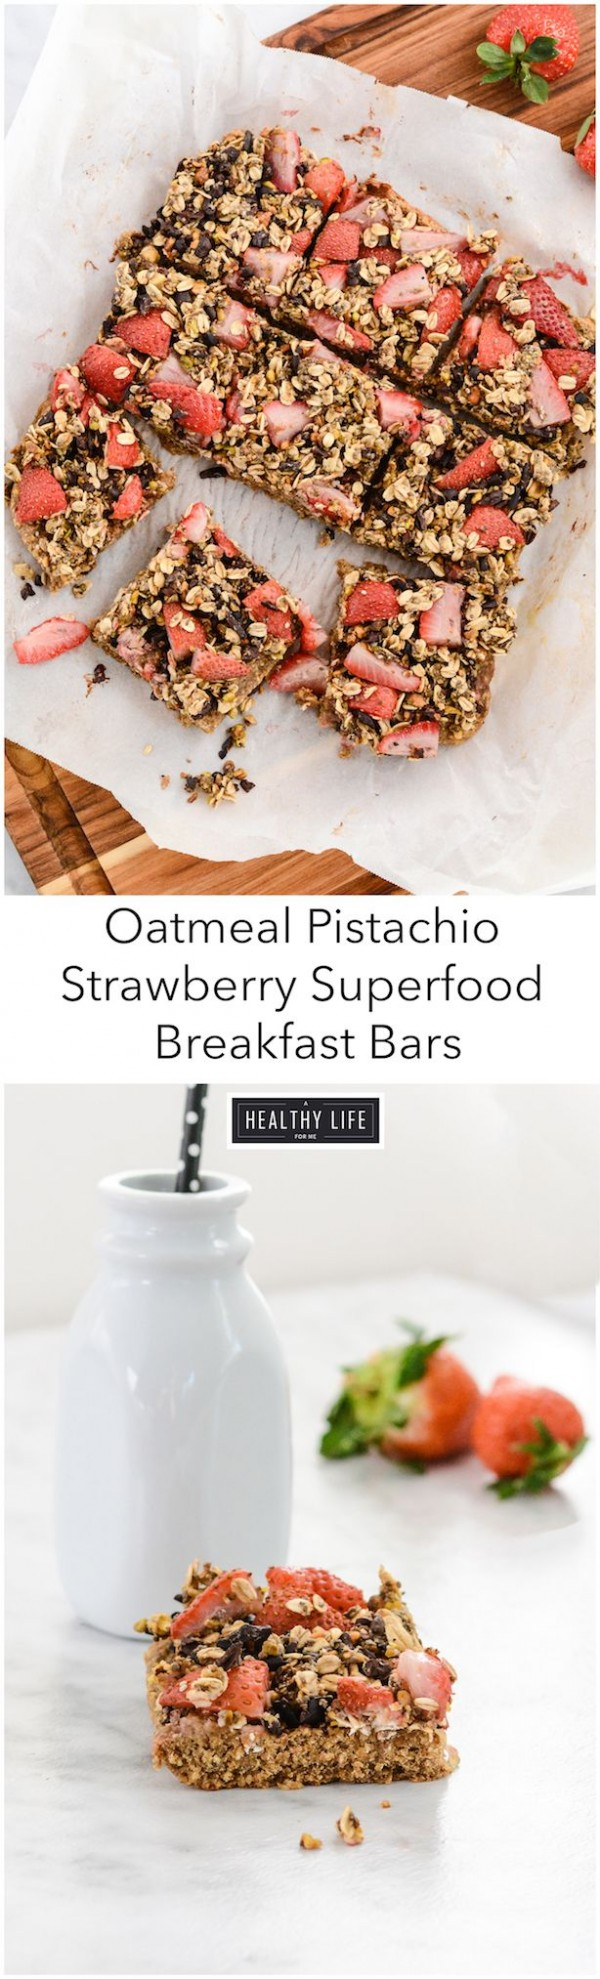 Get the recipe Oatmeal Pistachio Strawberry Superfood Breakfast Bars @recipes_to_go